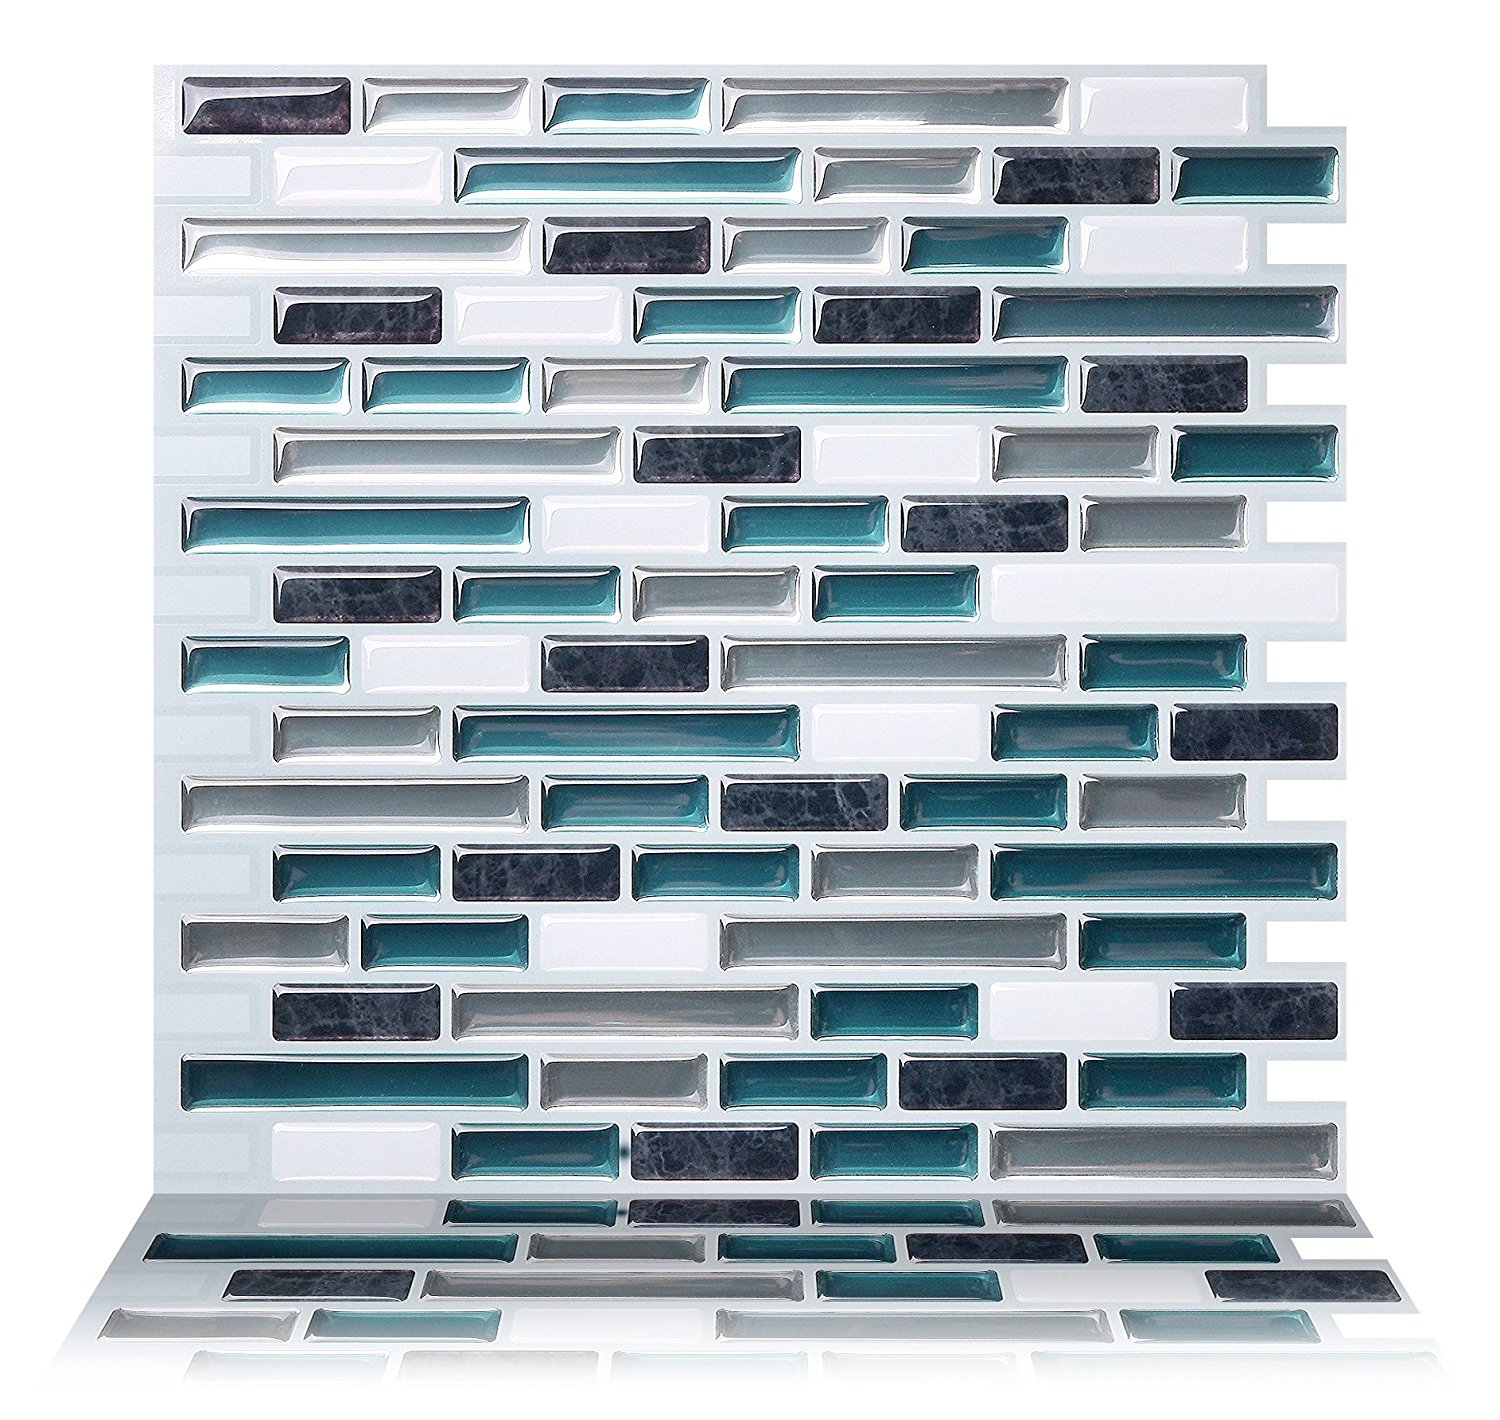 Tic Tac Tiles - Premium Anti Mold Peel and Stick Wall Tile Backsplash in Como Bay (5 Tile sheets)